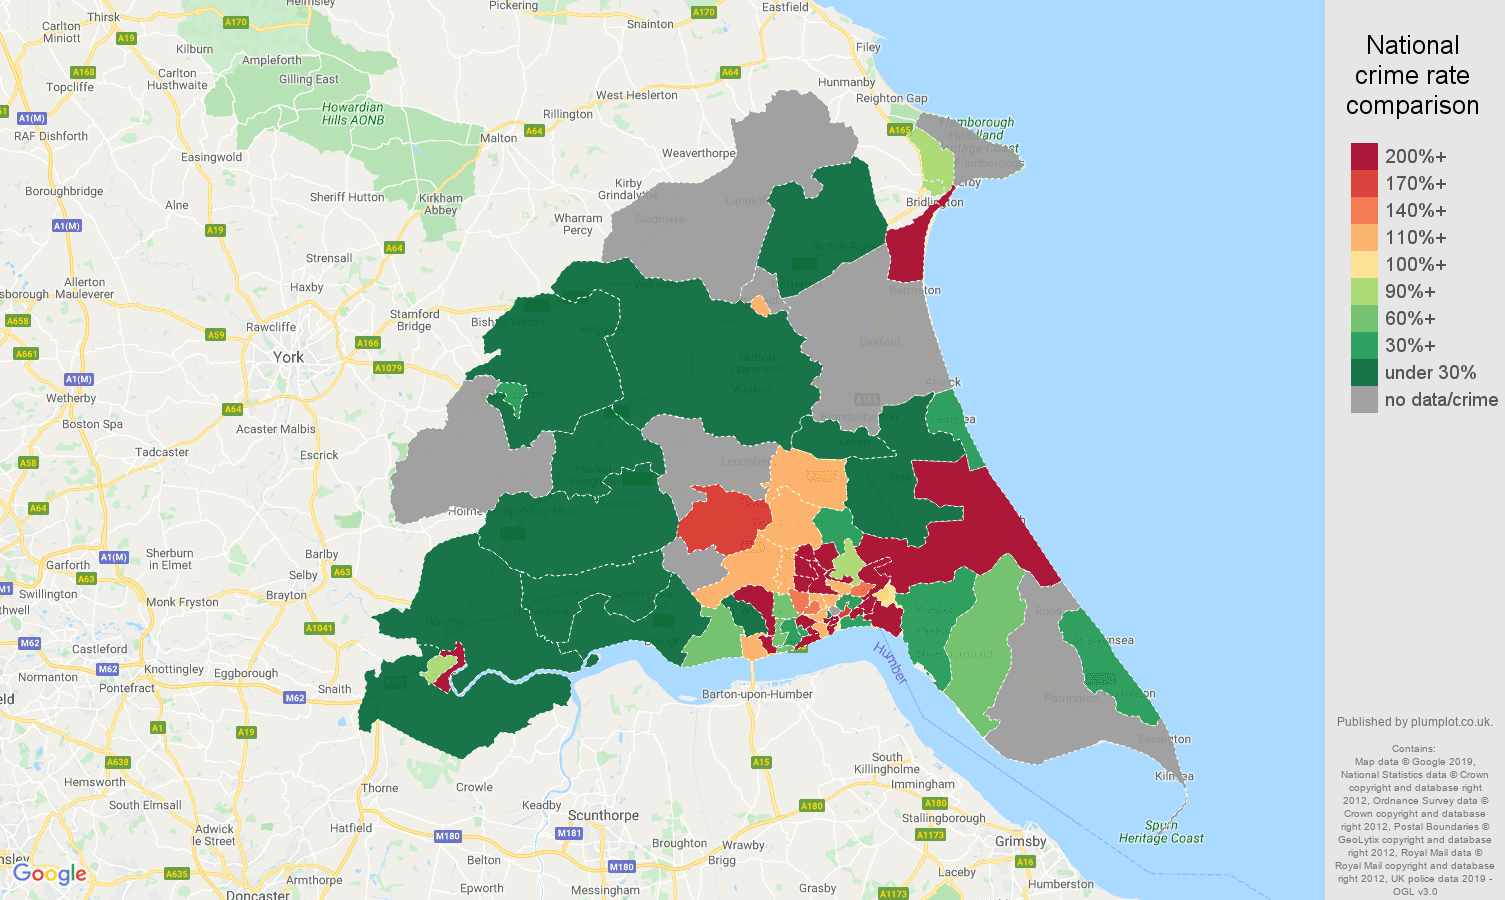 East Riding of Yorkshire shoplifting crime rate comparison map